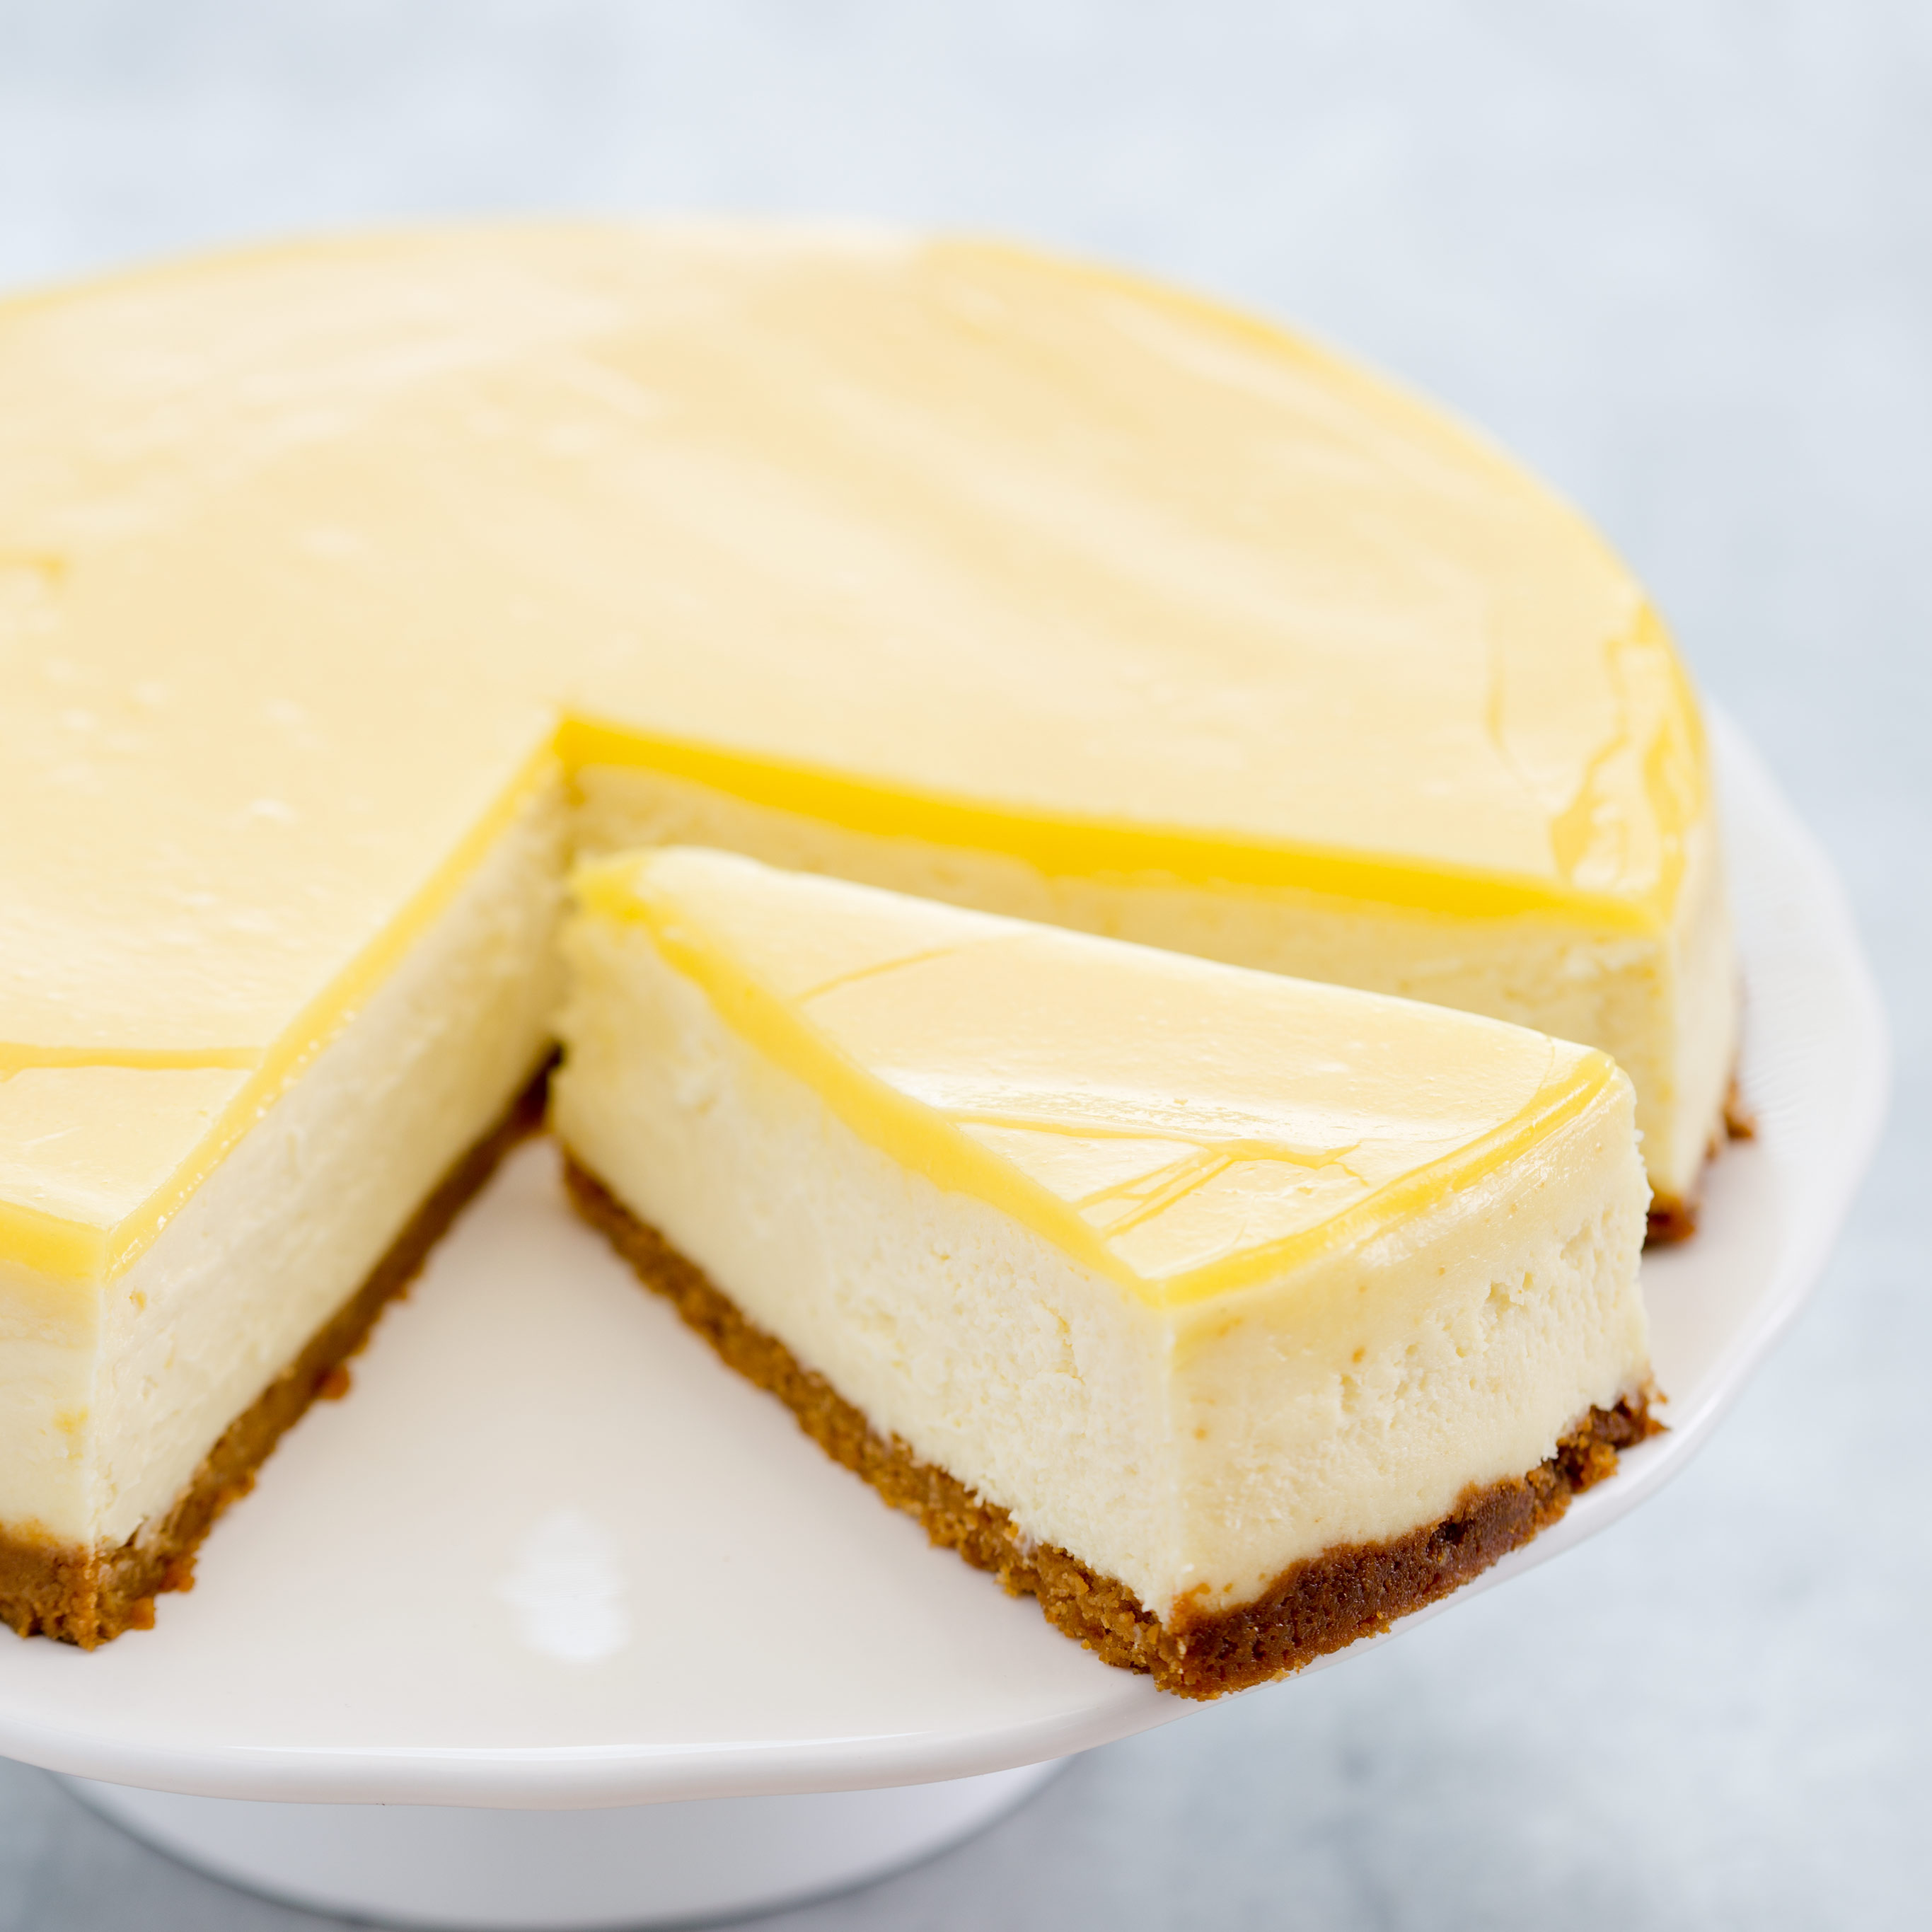 Cheese Cake Cream: Cooking Recipes 2